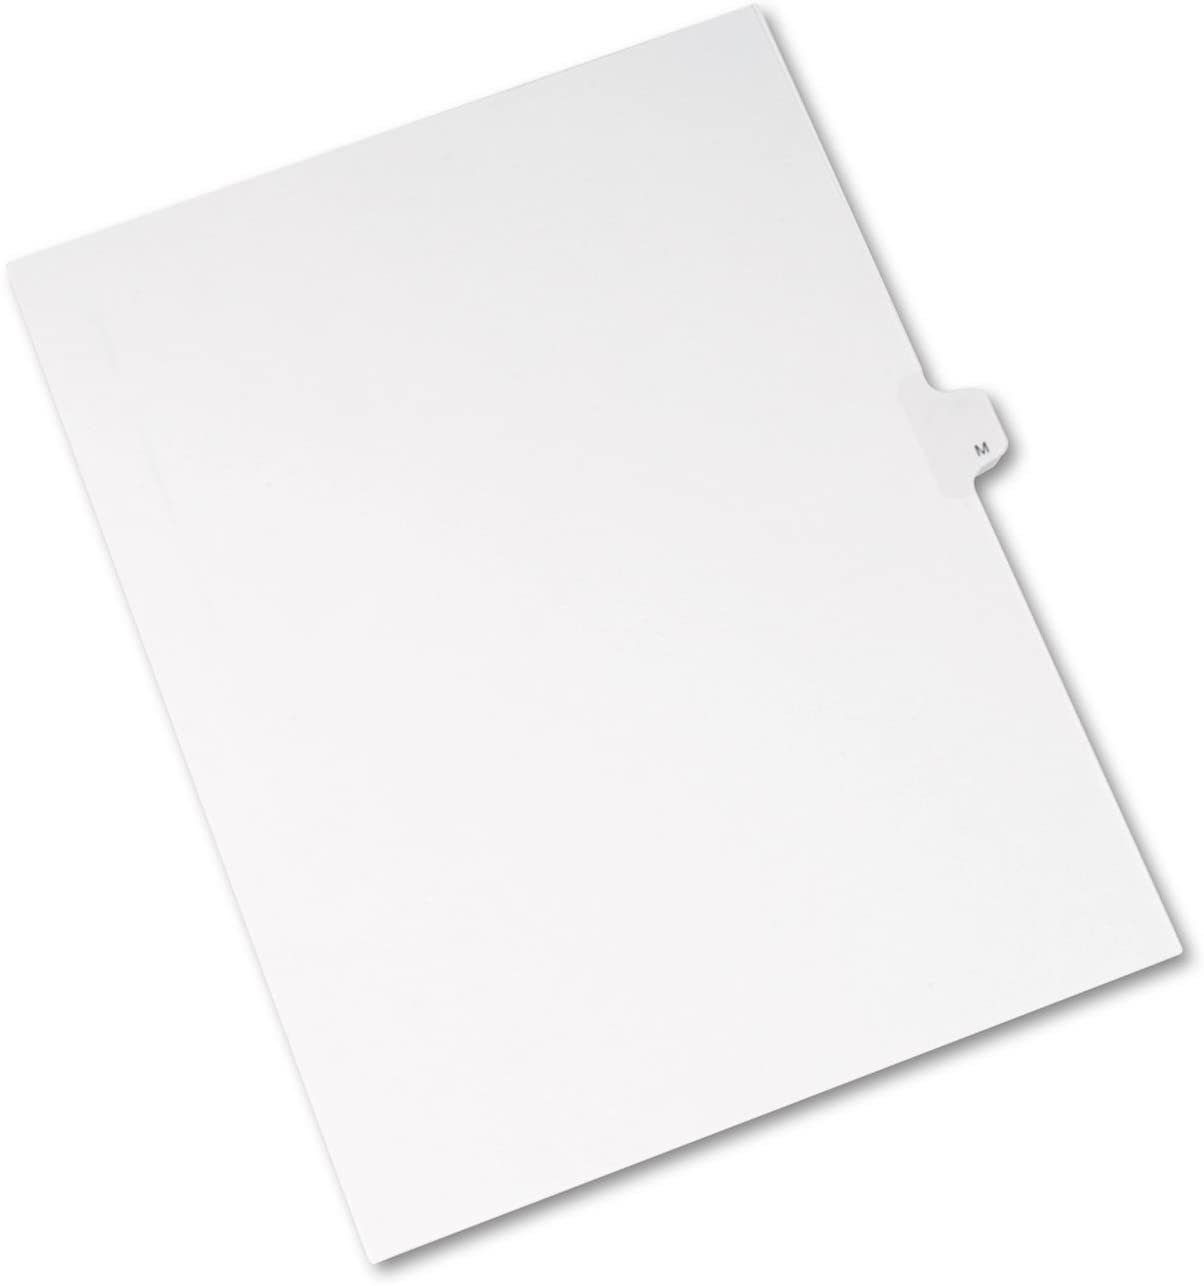 AVE82175 - Avery Individual Legal Tab Divider